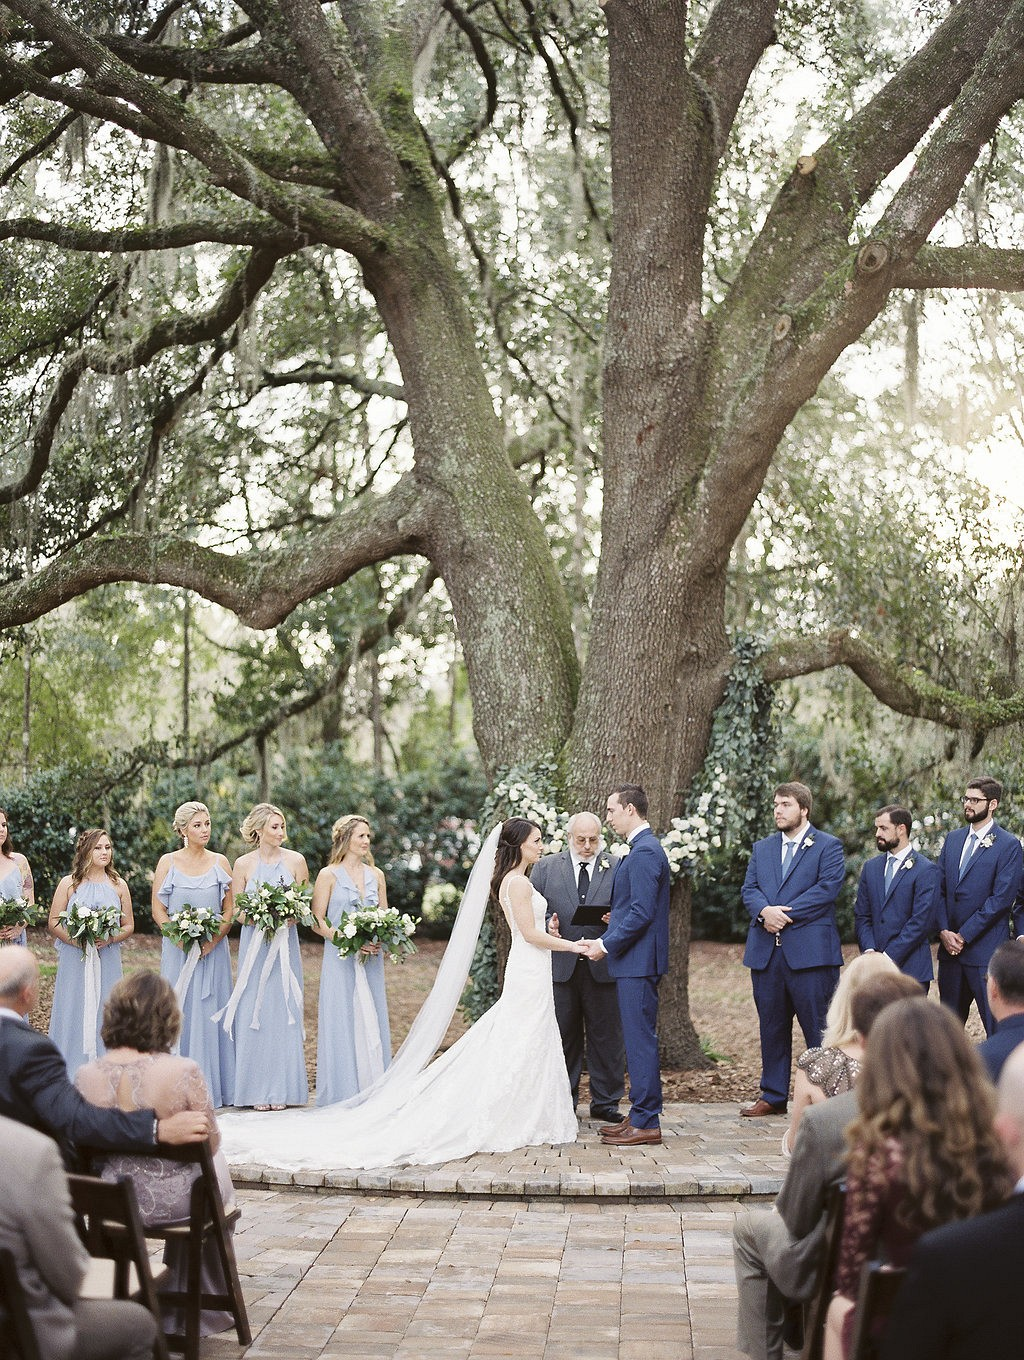 Amanda and Stephen's Dusty Blue Wedding with lots of Greenery